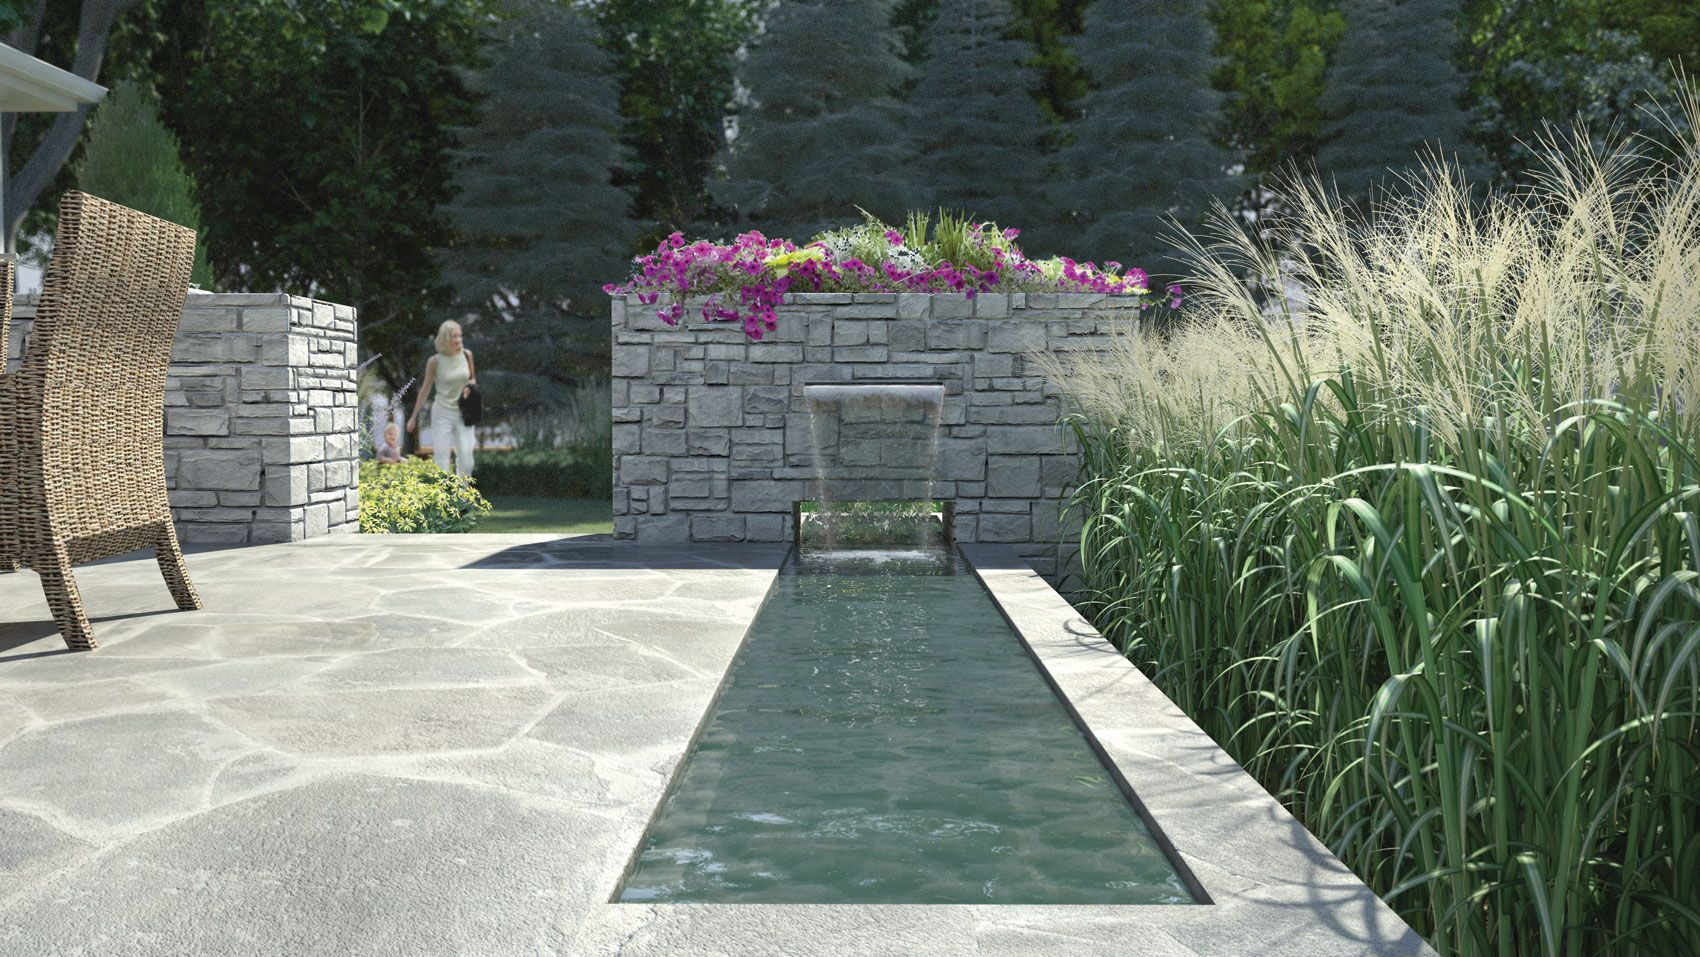 Landscaping With Water Features Landscape Design Landscape Design Services Landscape Plans